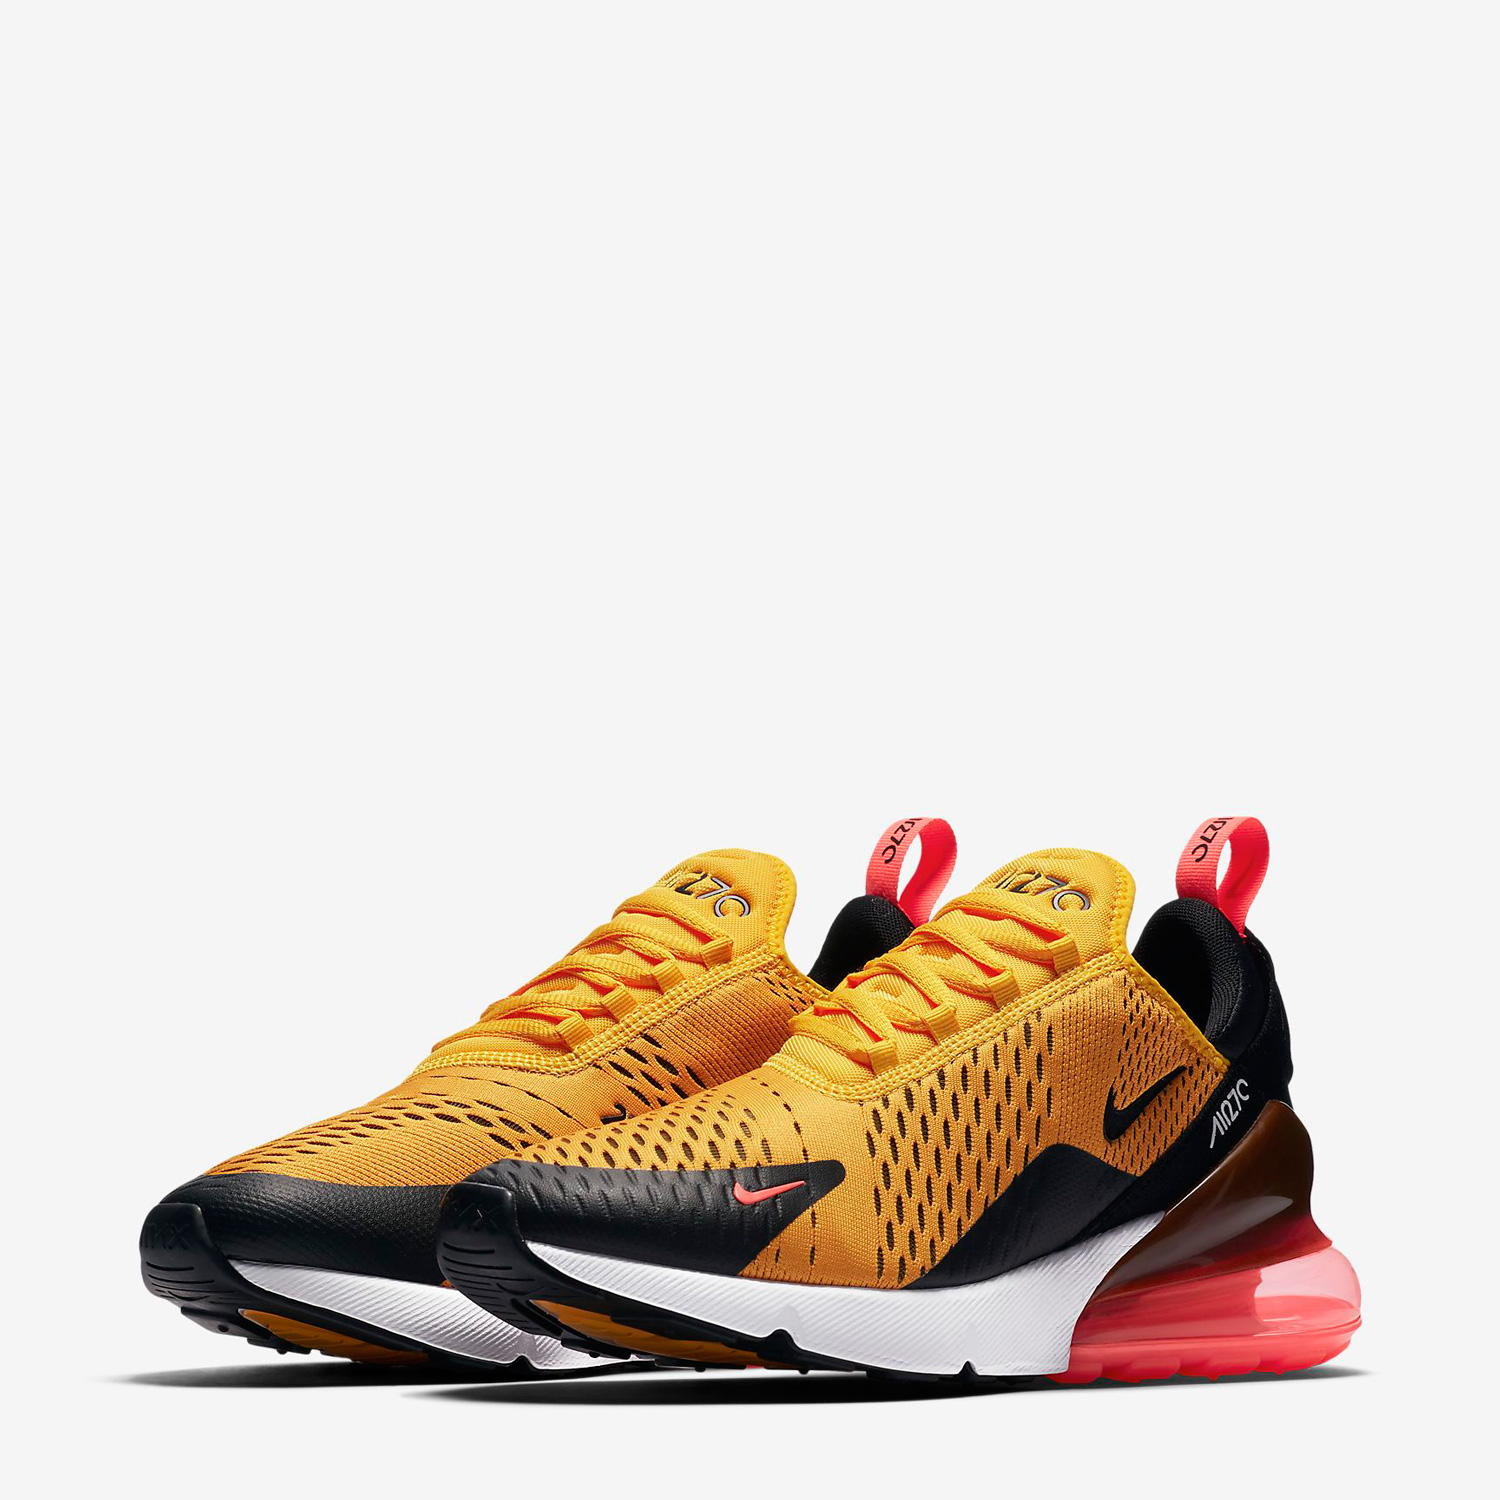 ... Max 180   Air max 93 it features Nike s biggest heel air unit to date  for a super soft ride. Limited Availability in Men s Sizes. 7f5c17a414